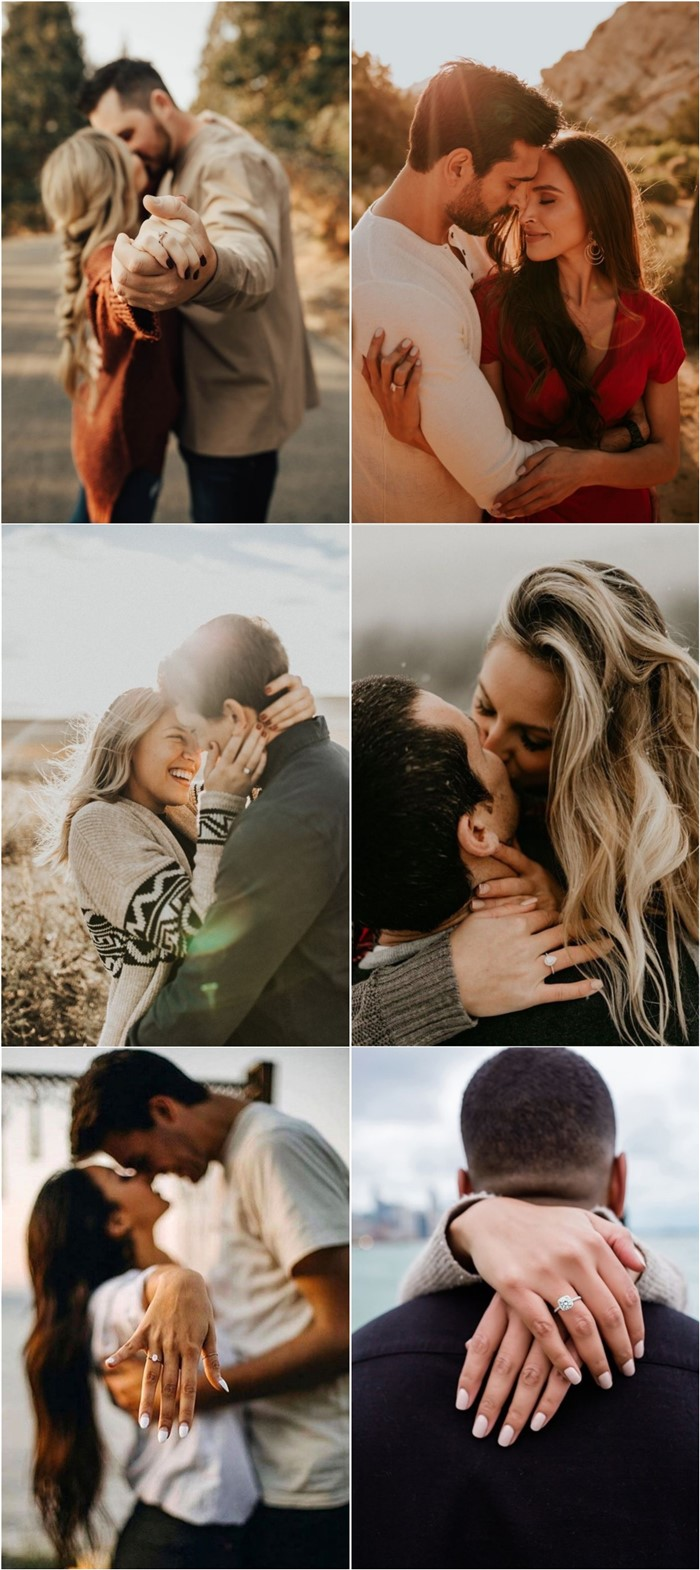 Engagement Ring Shot Engagement Photo Ideas #engagementphotos #engagementrings #rings